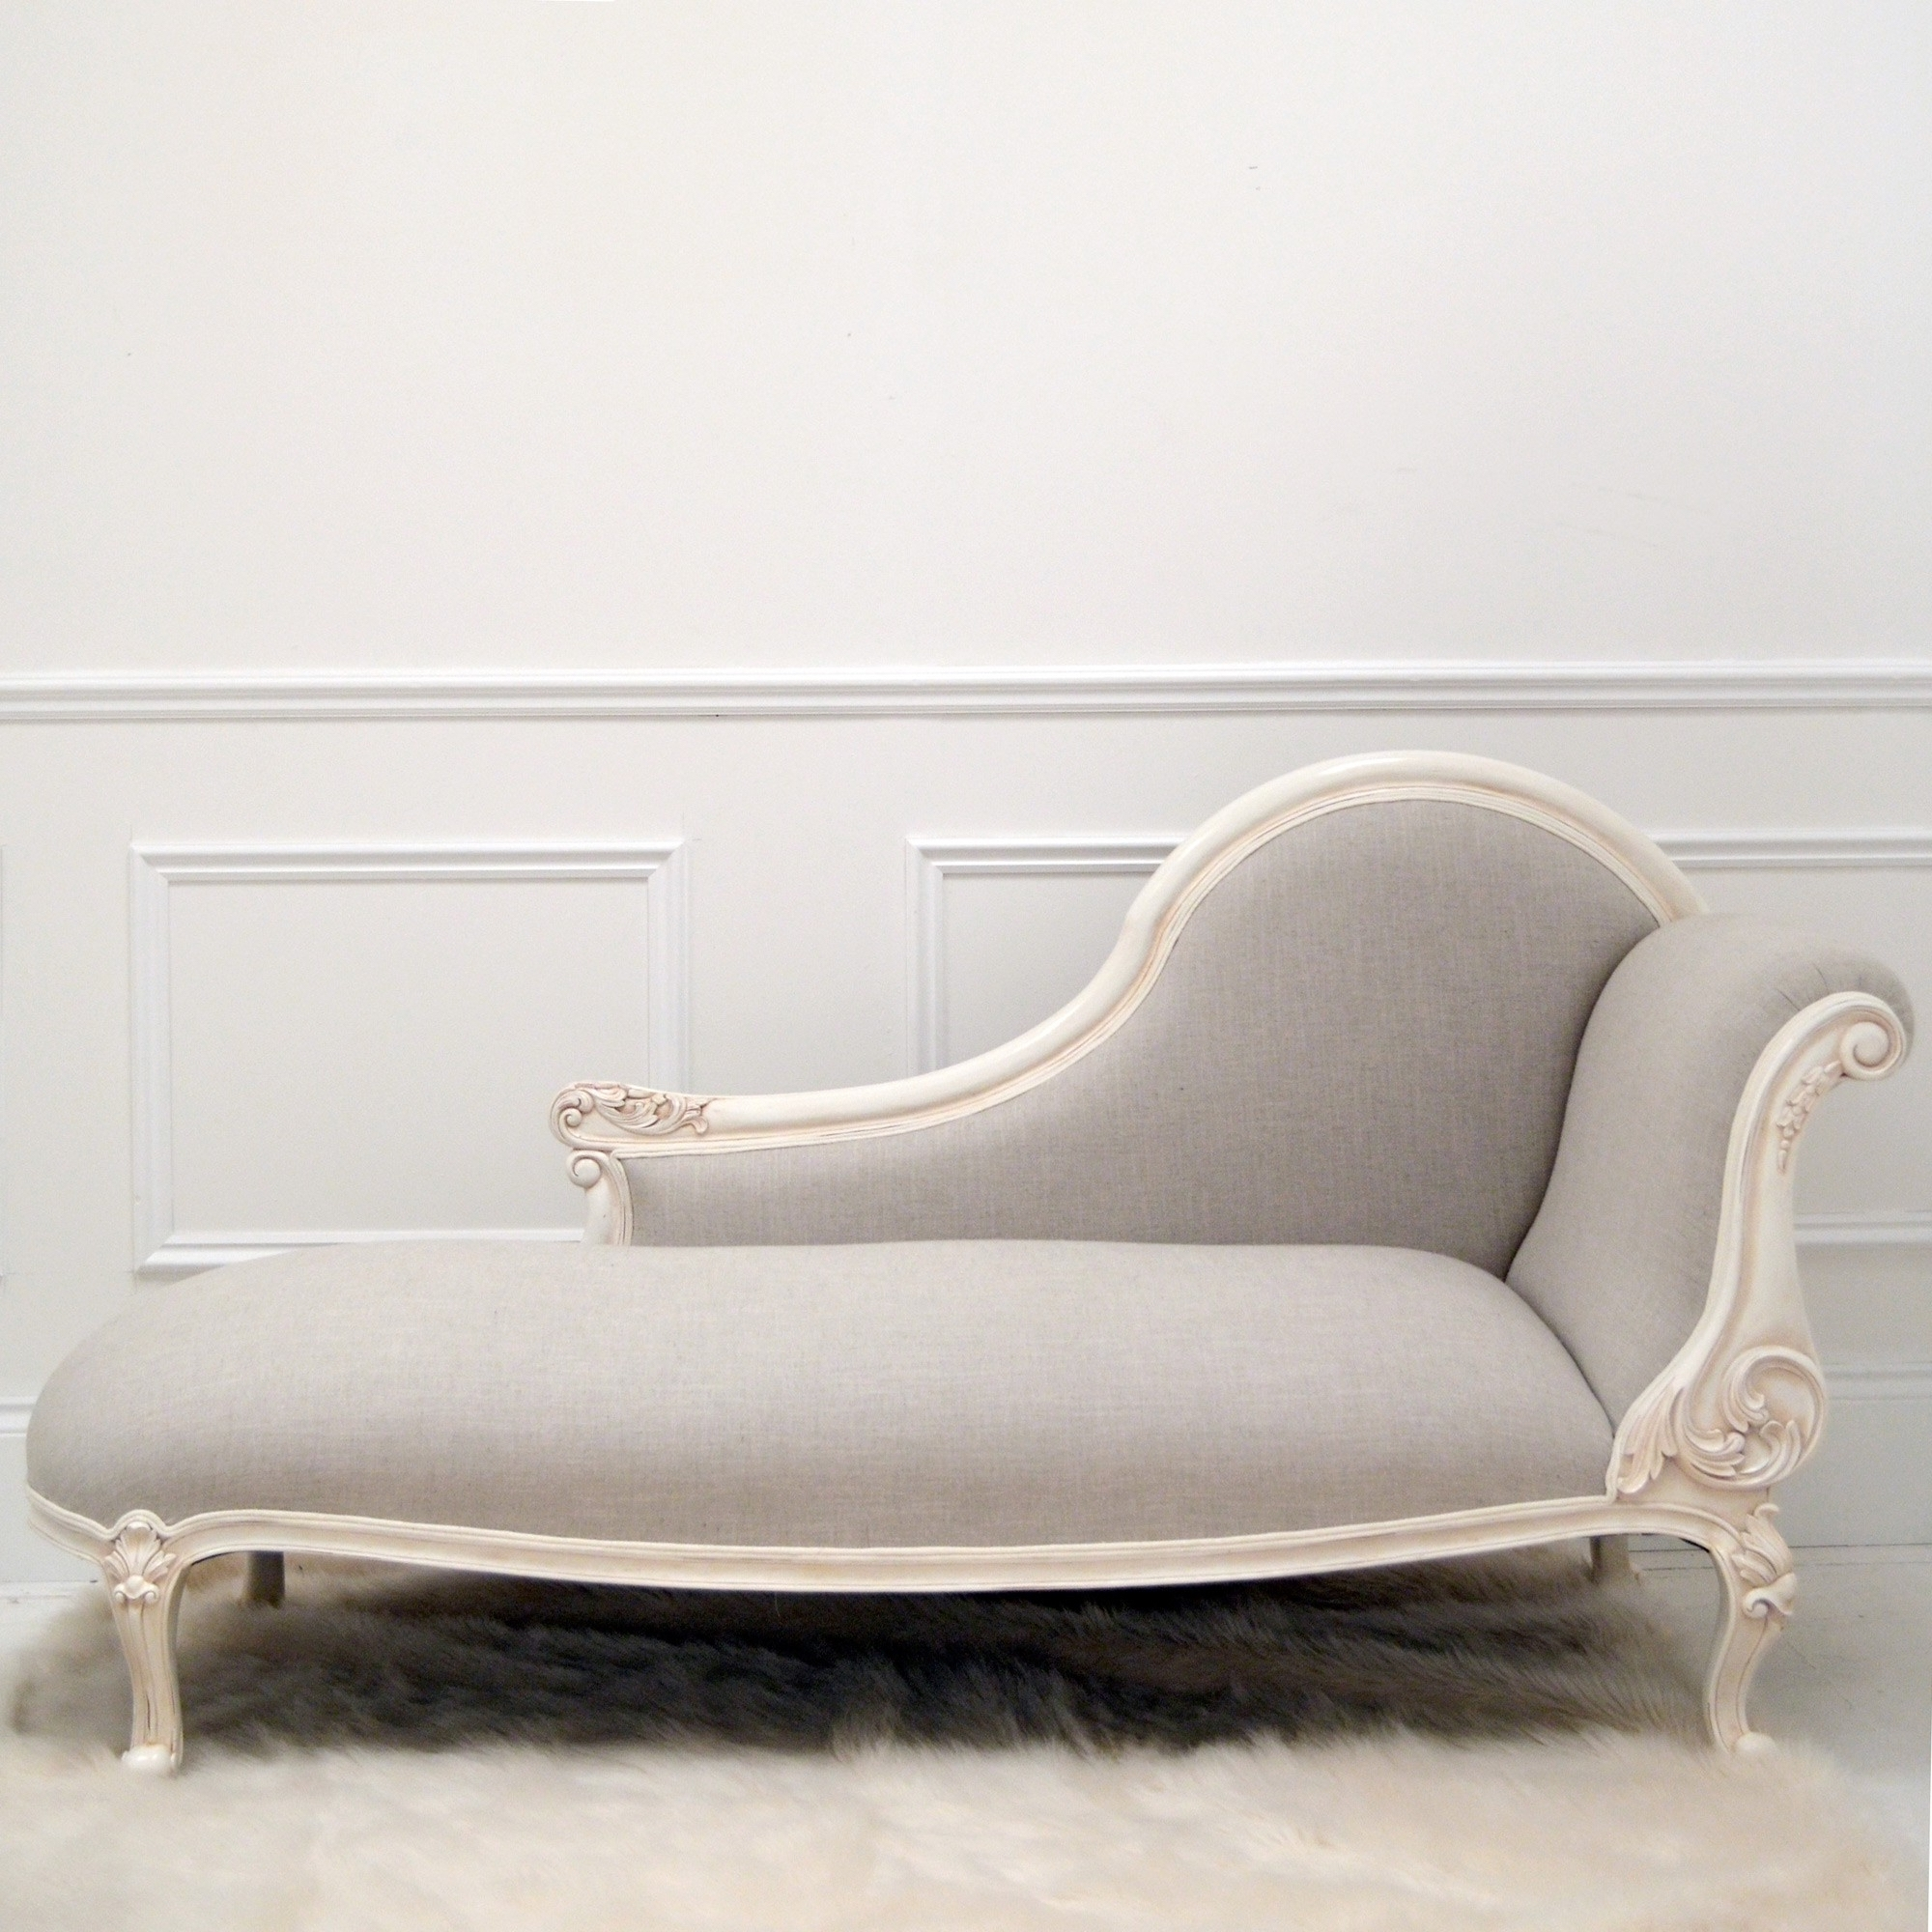 Chaise Lounge For Teens Modern Bedroom Chairs Wayfair Ikea 2017 For Recent Chaises For Bedroom (View 9 of 15)